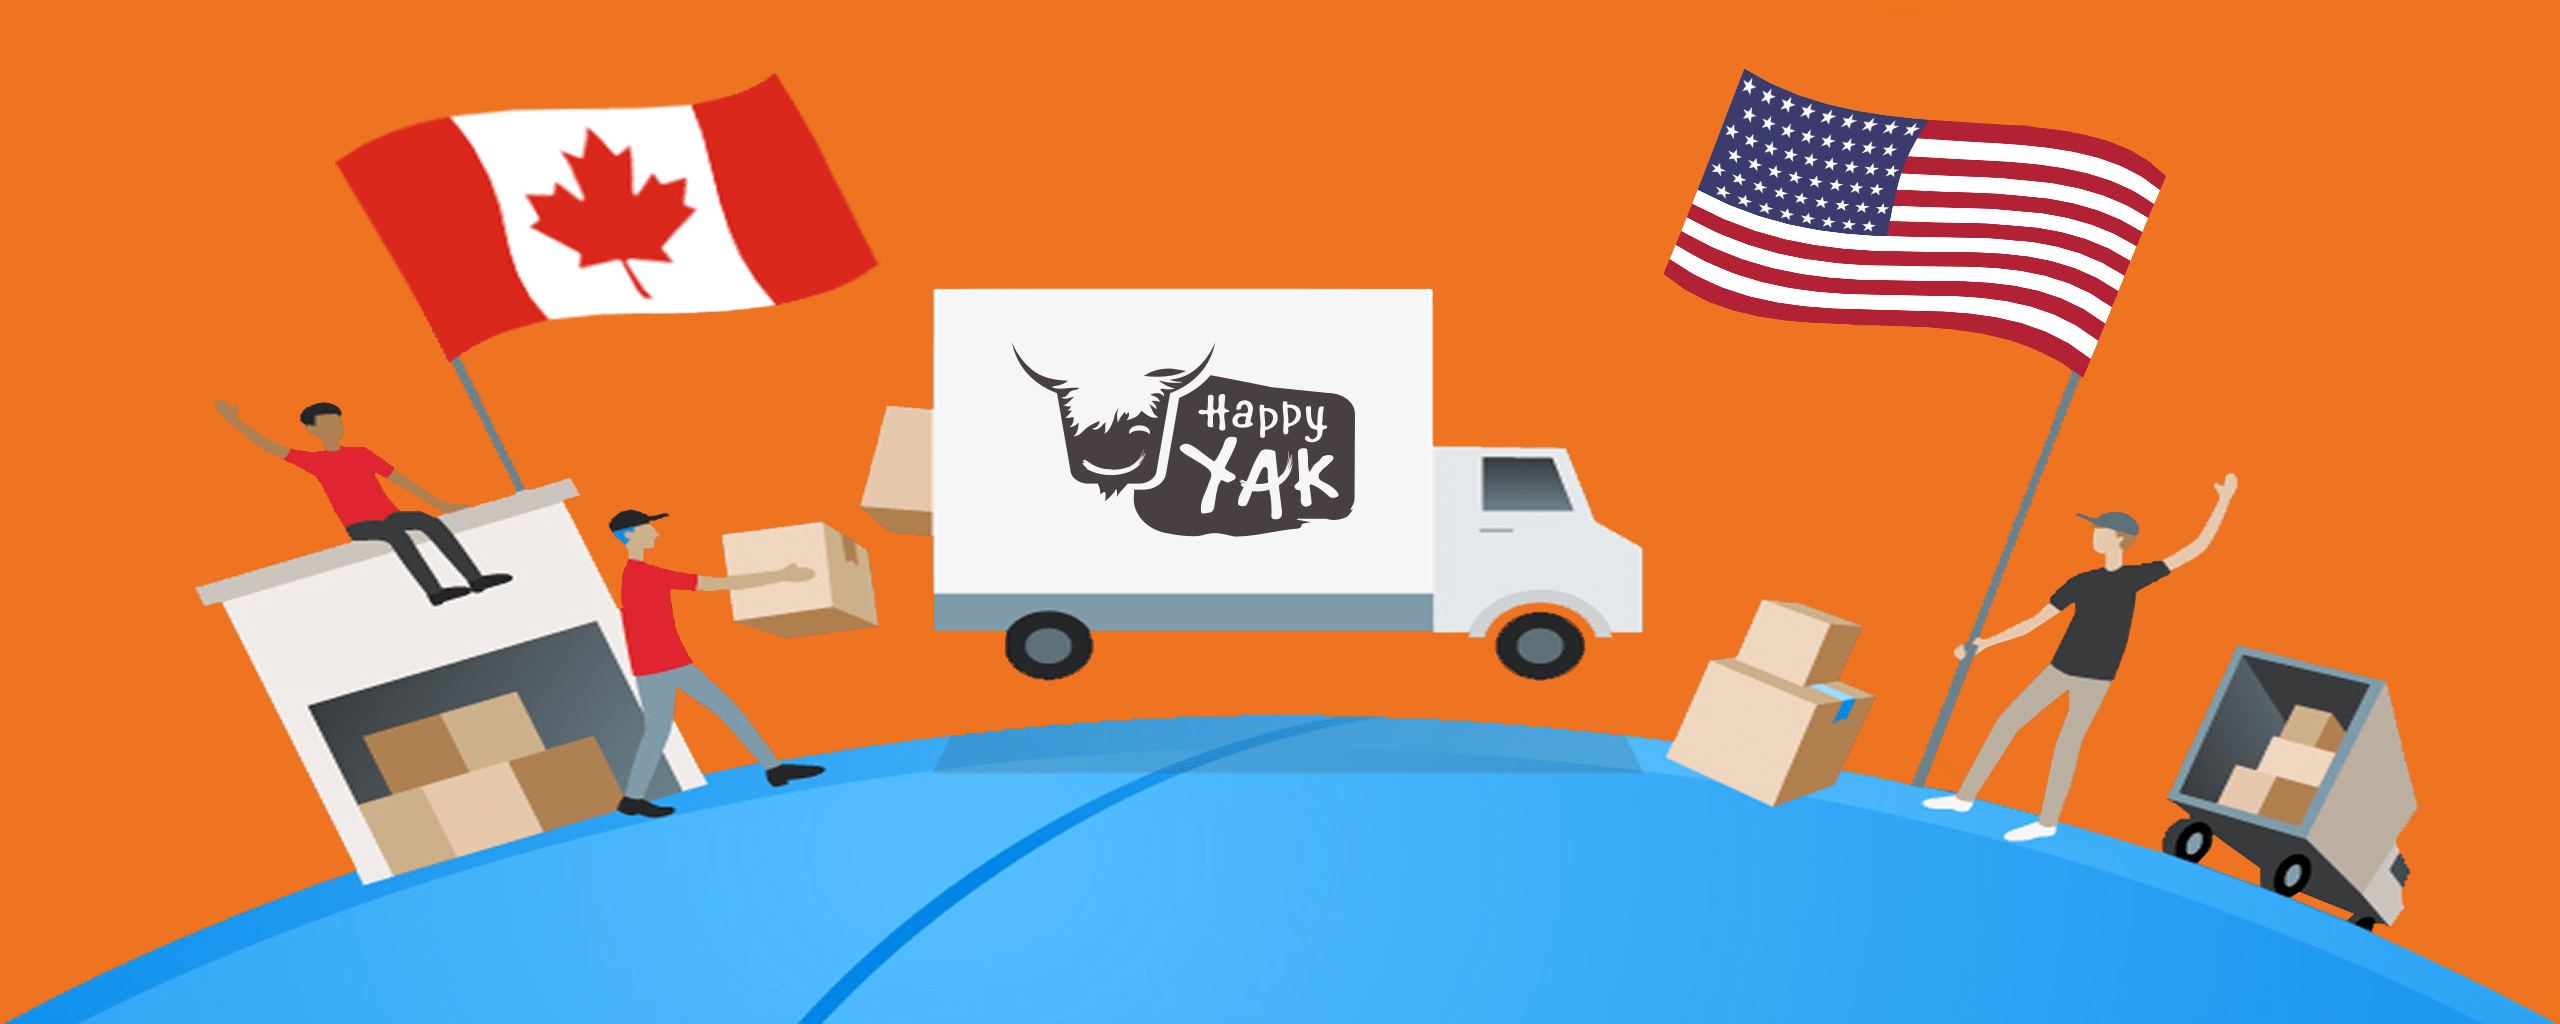 A truck is transporting Happy Yak meals to the US